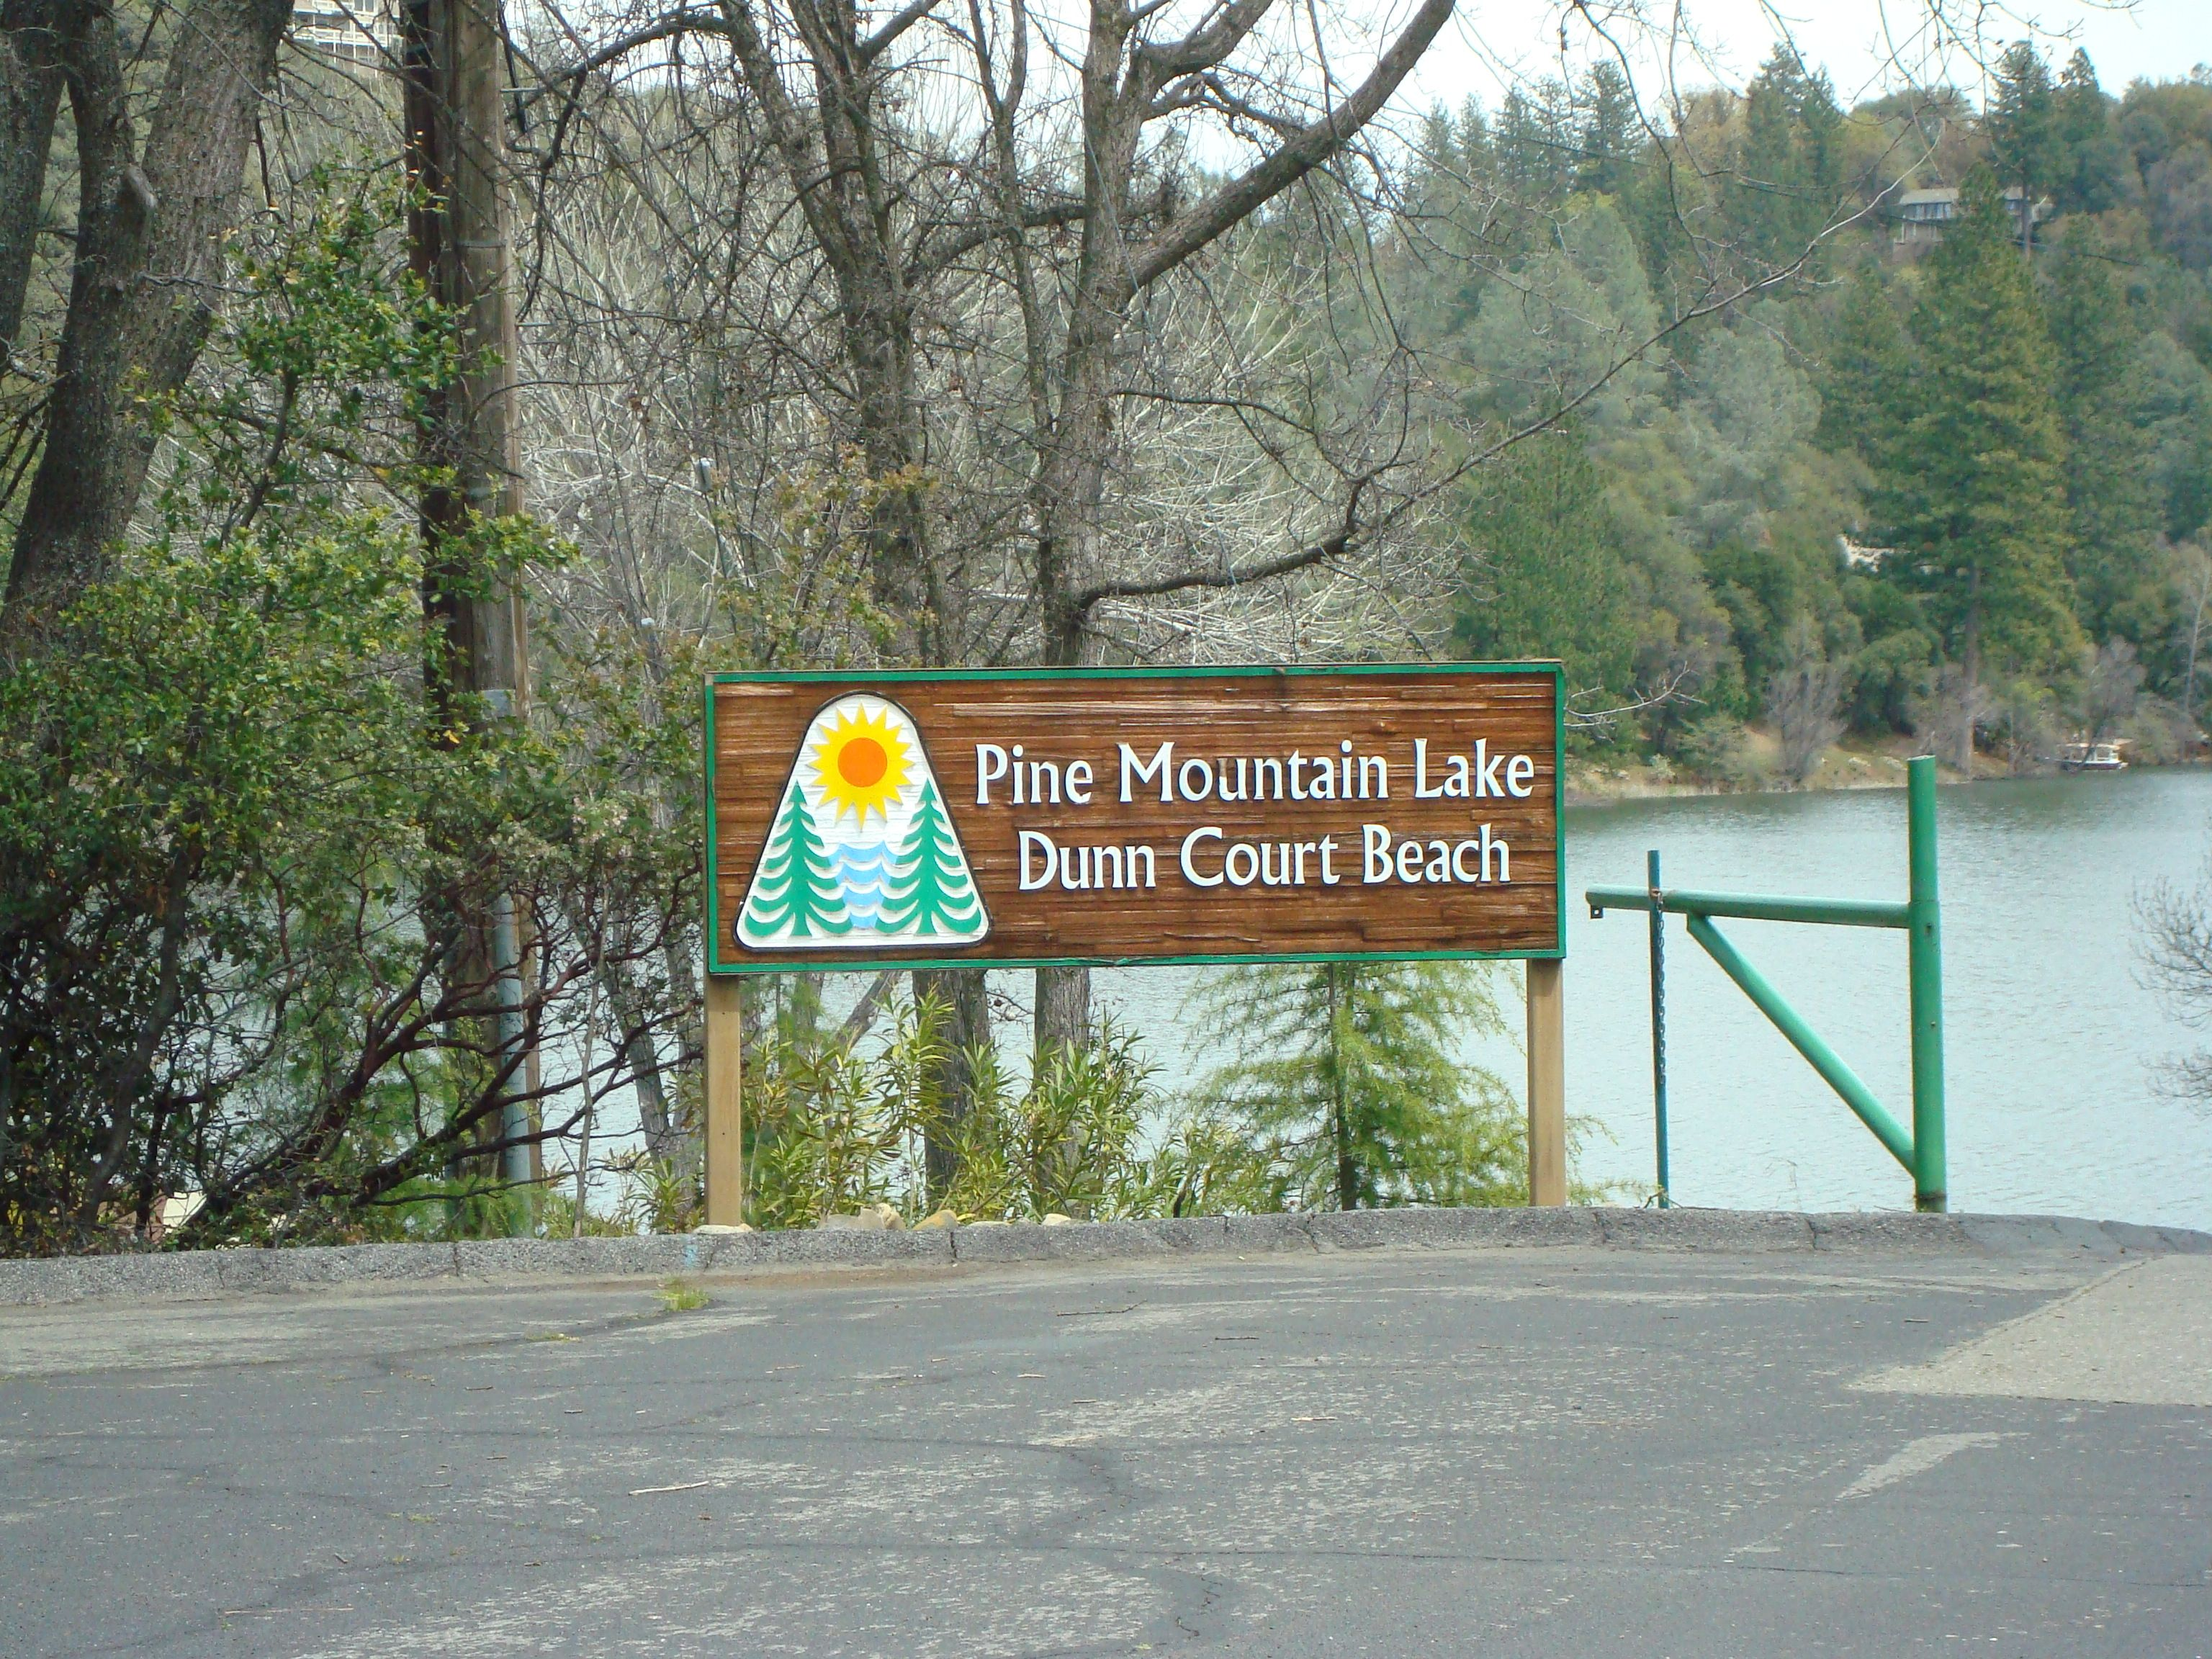 Pine Mountain Lake Dunn Court Beach Entrance Is The Smallest And Quietest